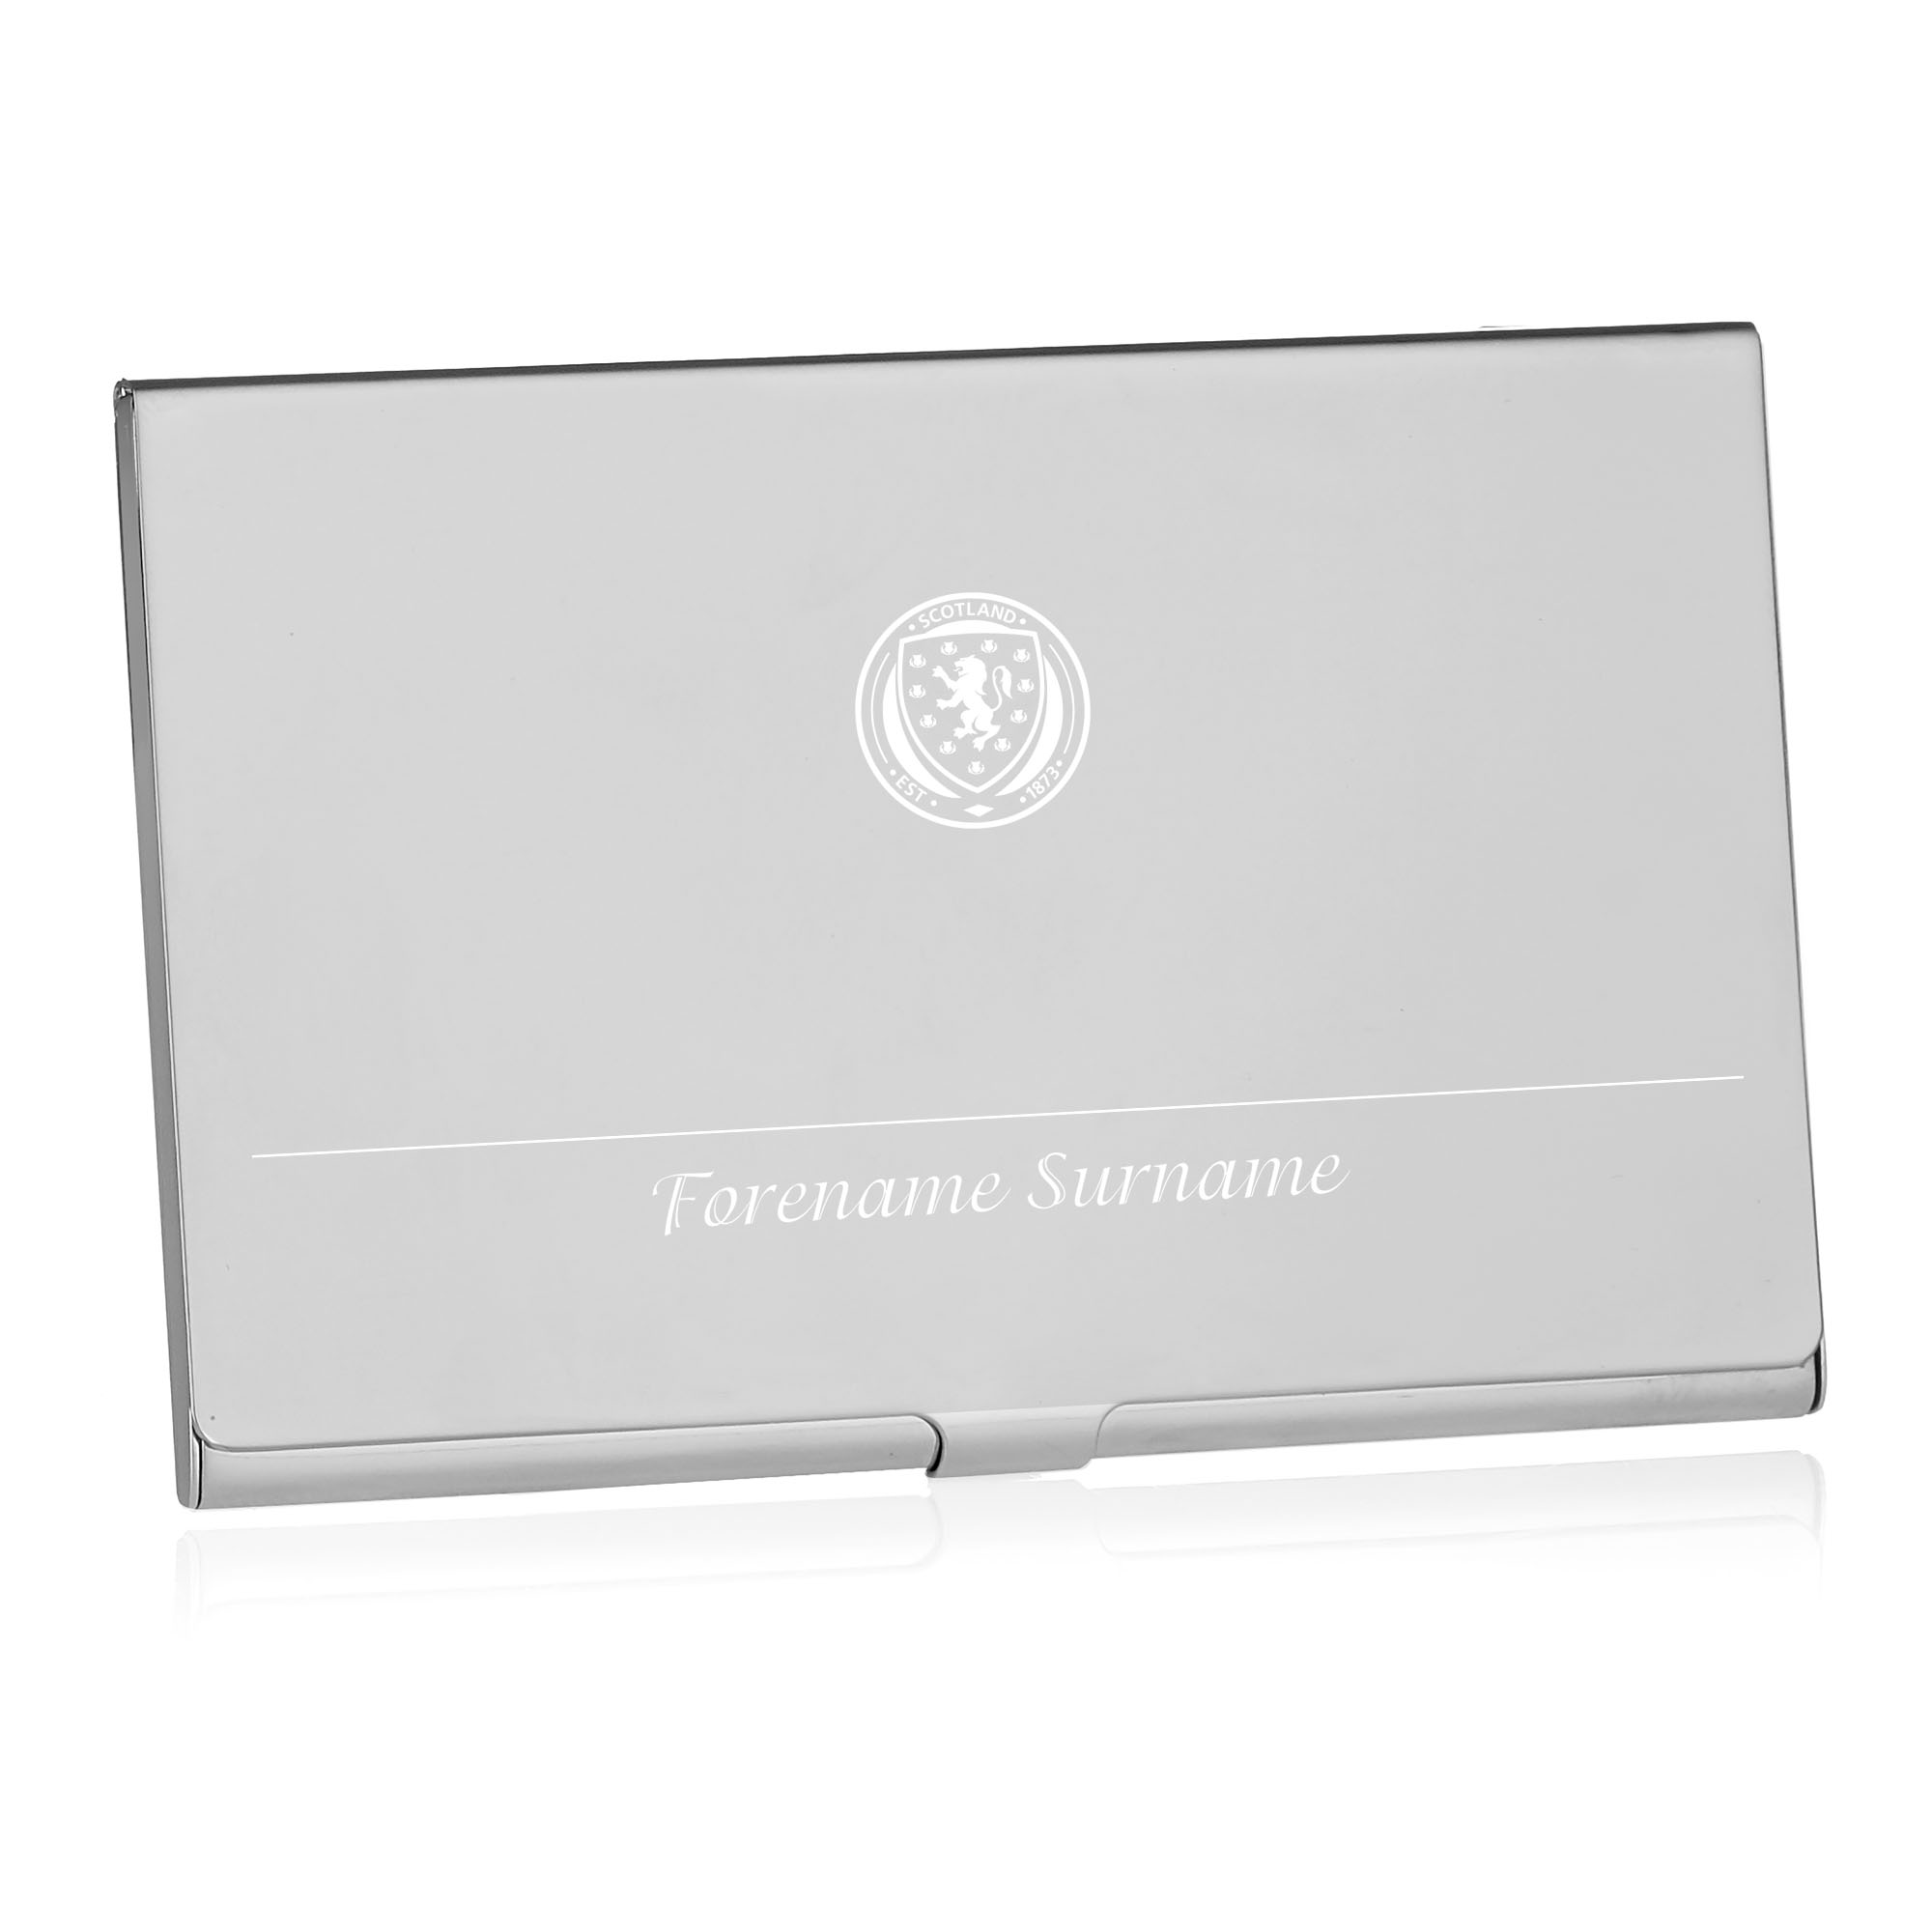 Scotland Executive Business Card Holder